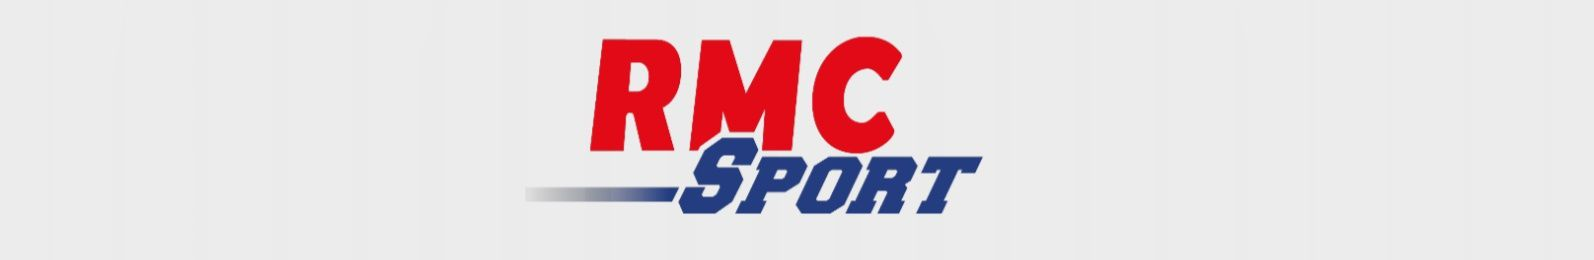 La Journaliste Flora Moussy Rejoint Rmc Sport Leblogtvnews